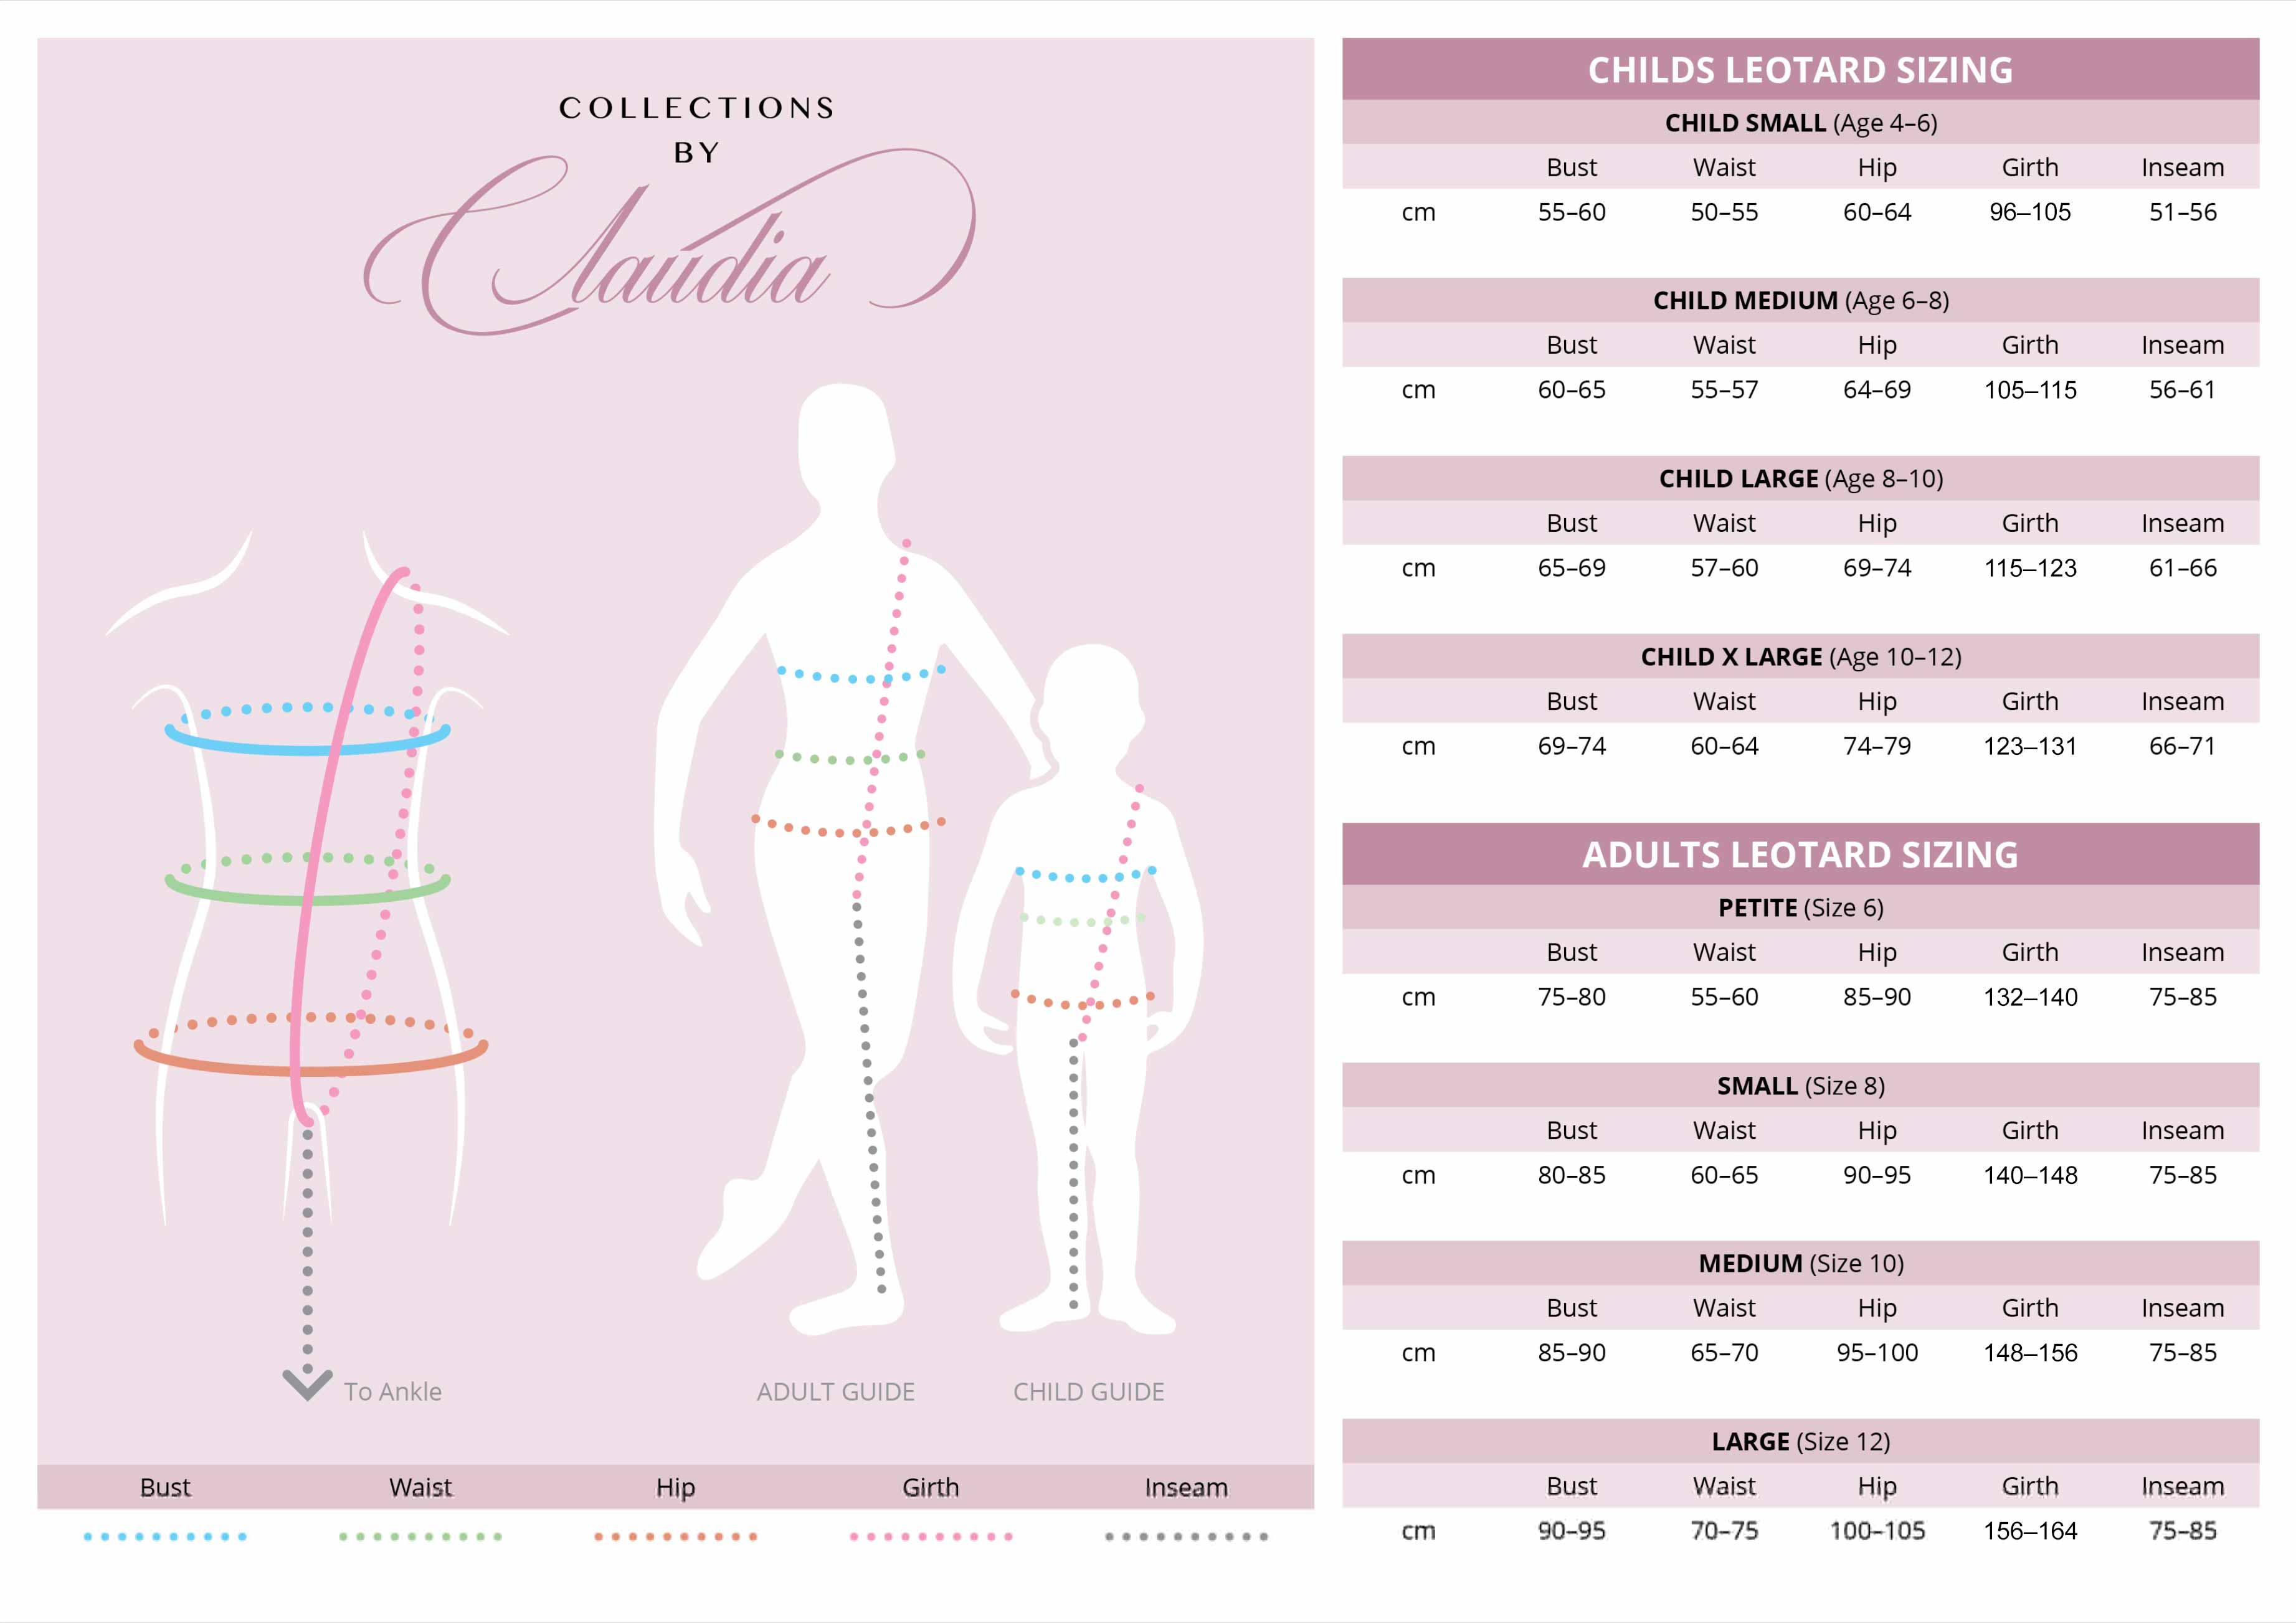 Collections by Claudia Sizing Chart